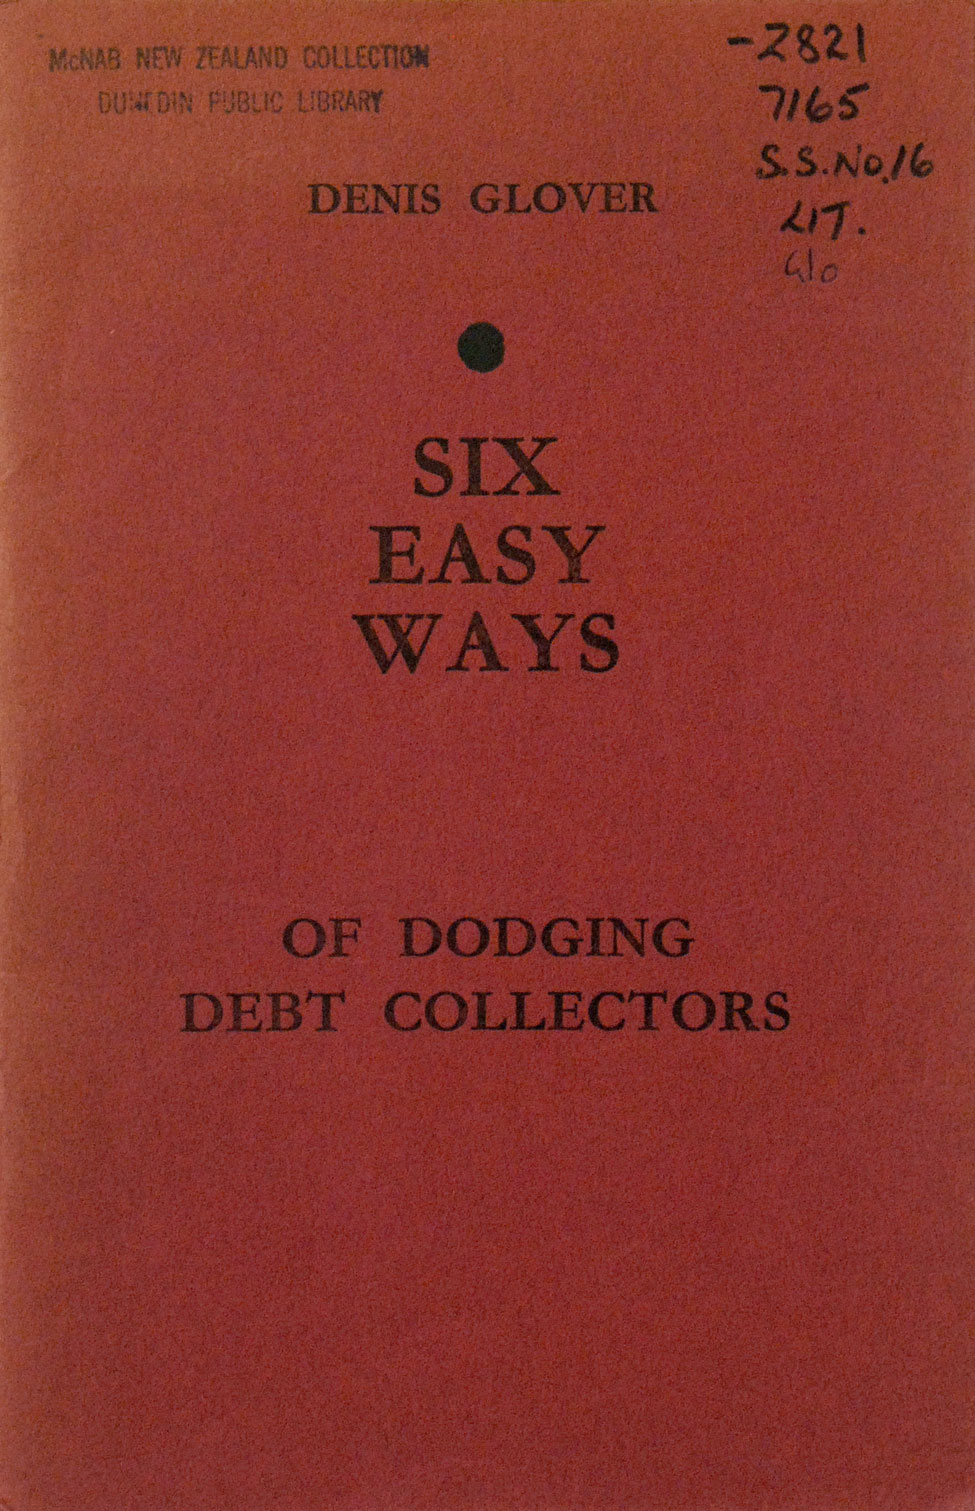 Denis Glover. Six Easy Ways of Dodging Debt Collectors [or] Several Poems… <i>Christchurch: The Caxton Press, 1936.</i>